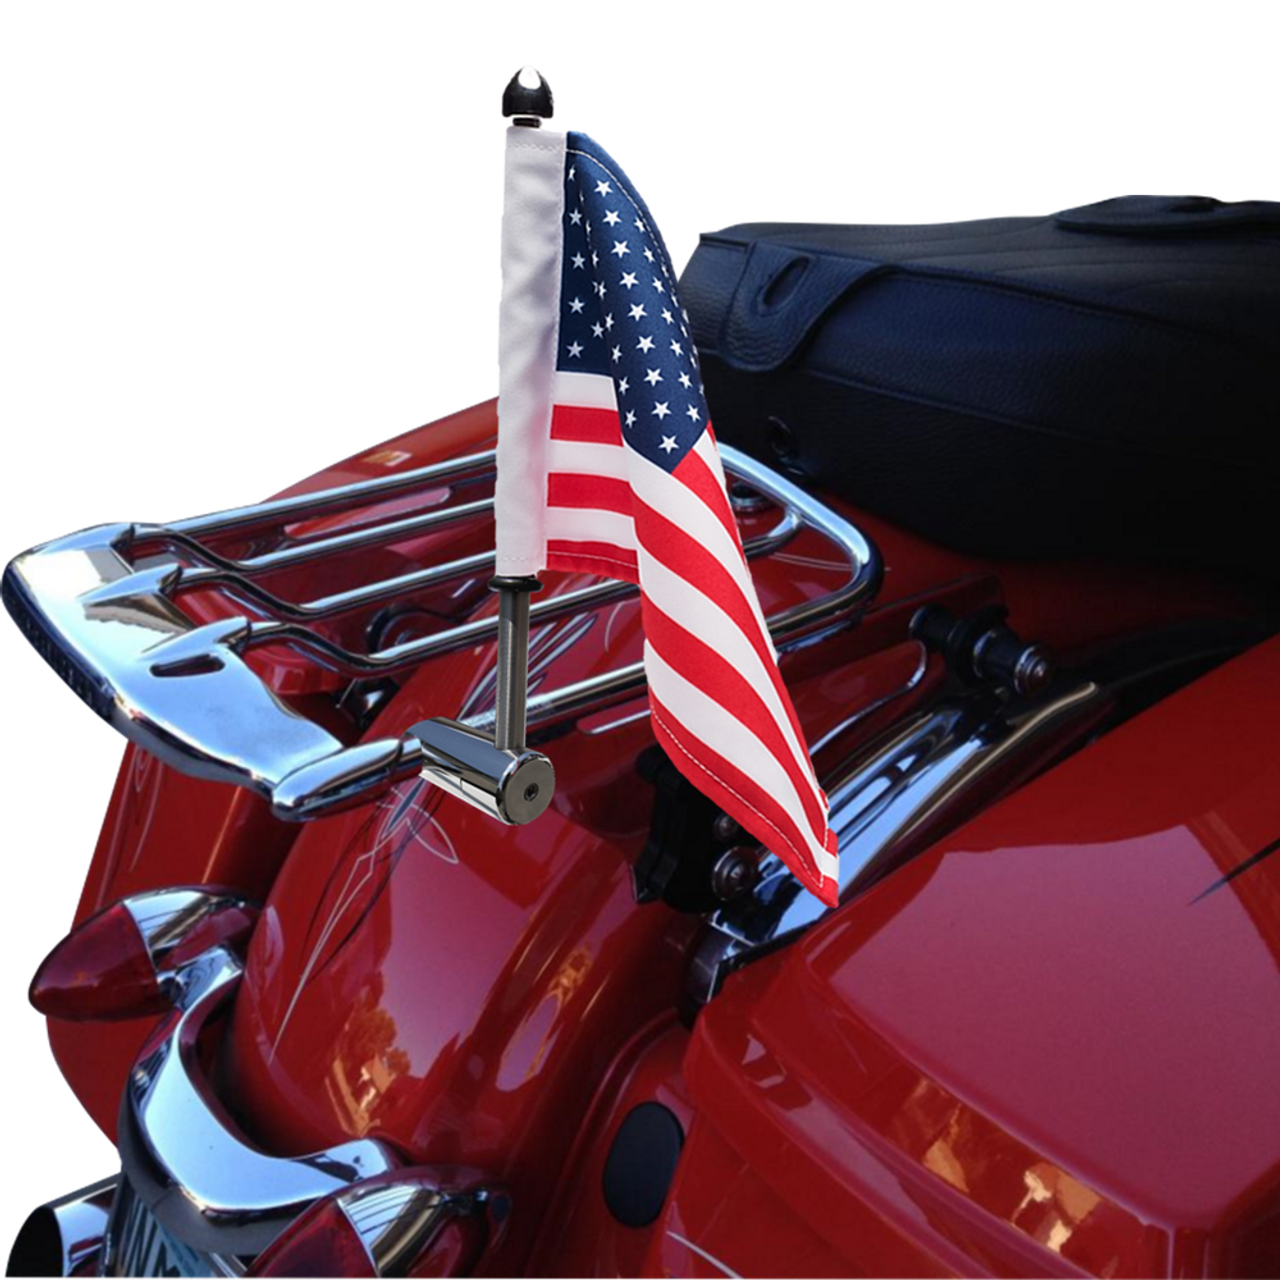 """1/2"""" Fixed, extended horizontal mount with 9"""" pole, standard cone topper and 6""""x9"""" USA flag on Harley detachable Air Wing rack (rack not included)"""